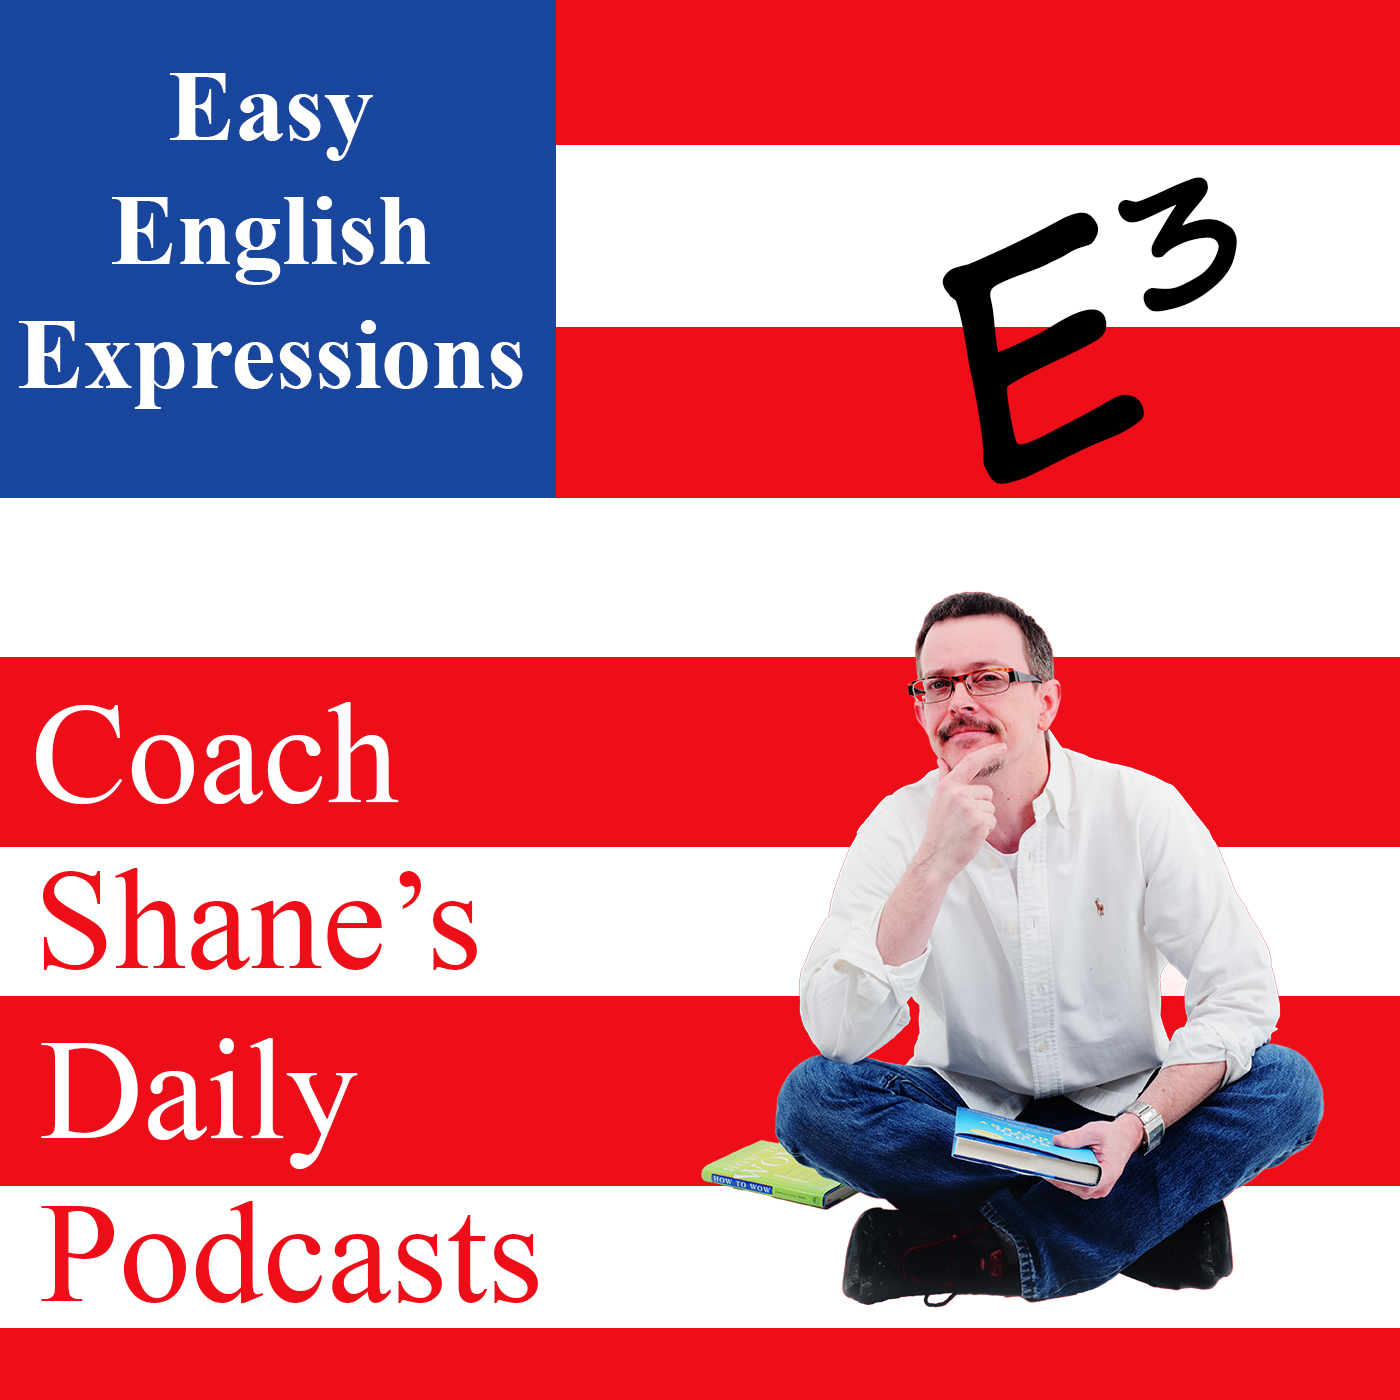 38 Daily Easy English Expression PODCAST—Don't sweat it!